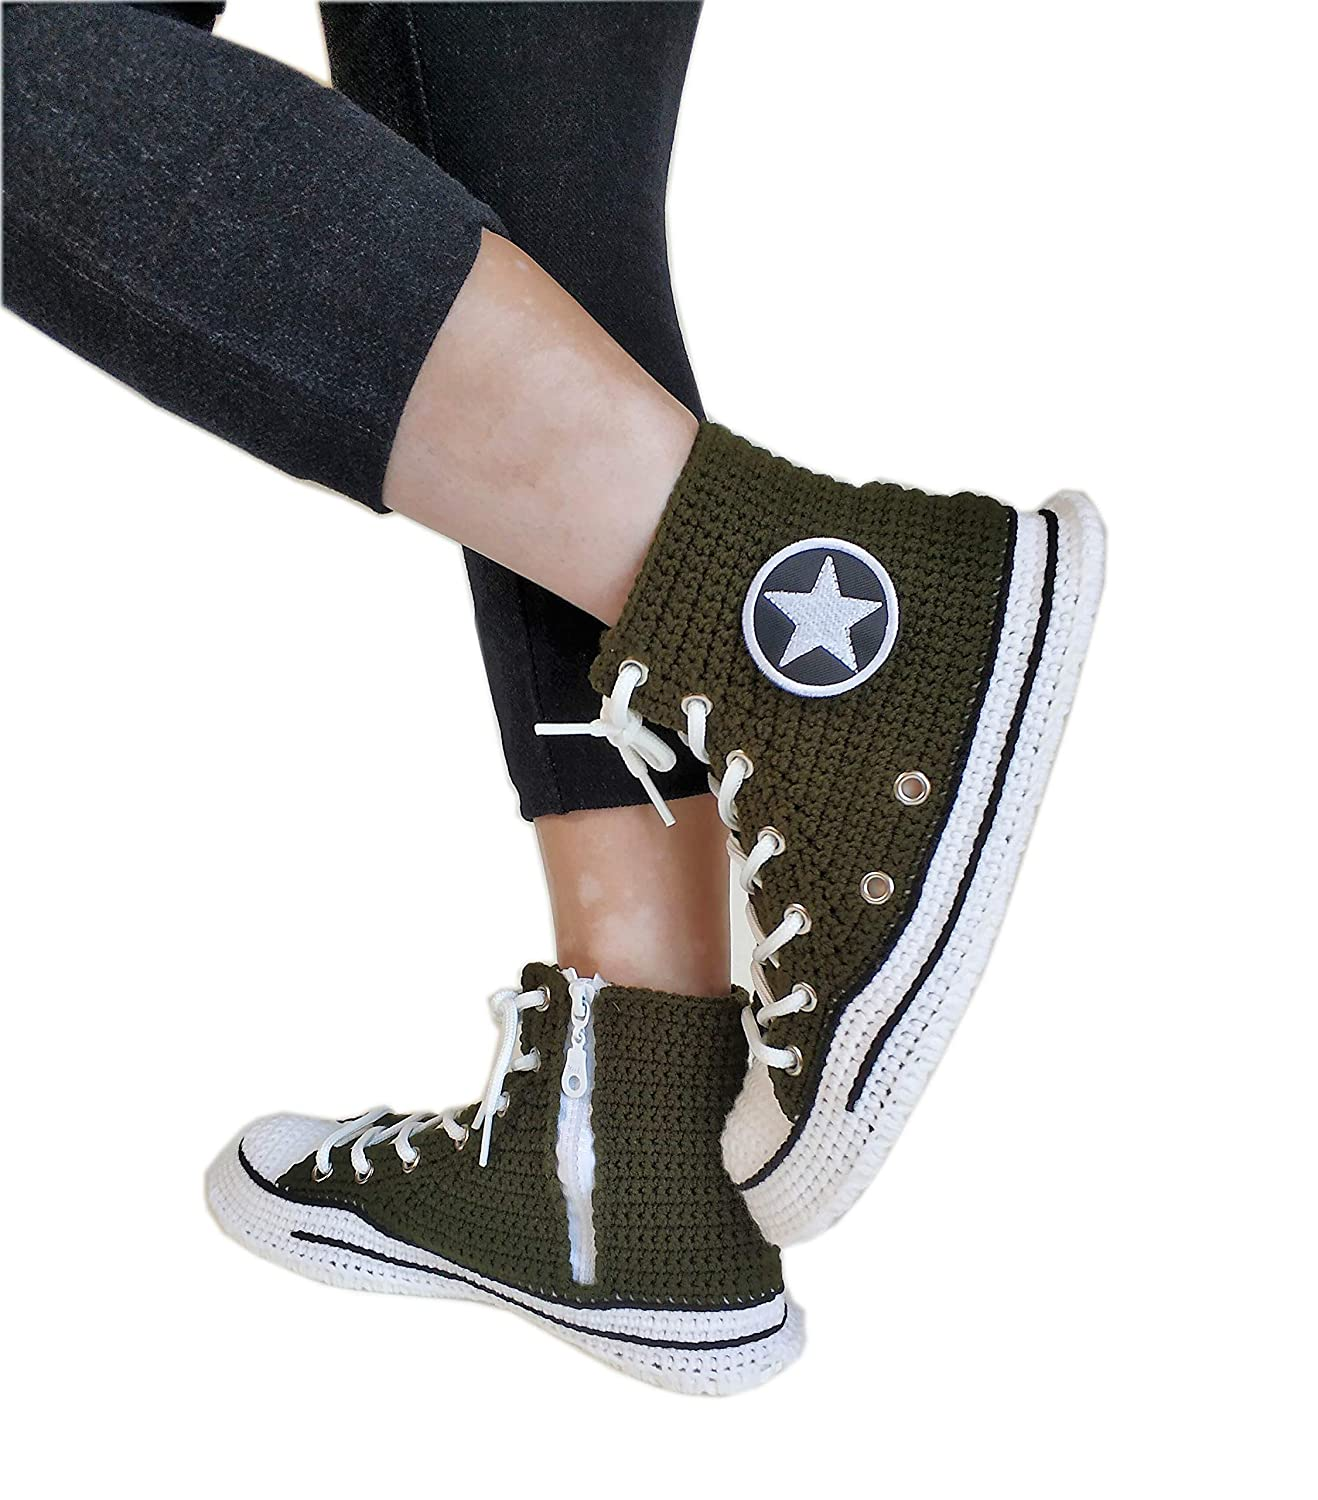 Army Green Military Sneakers High